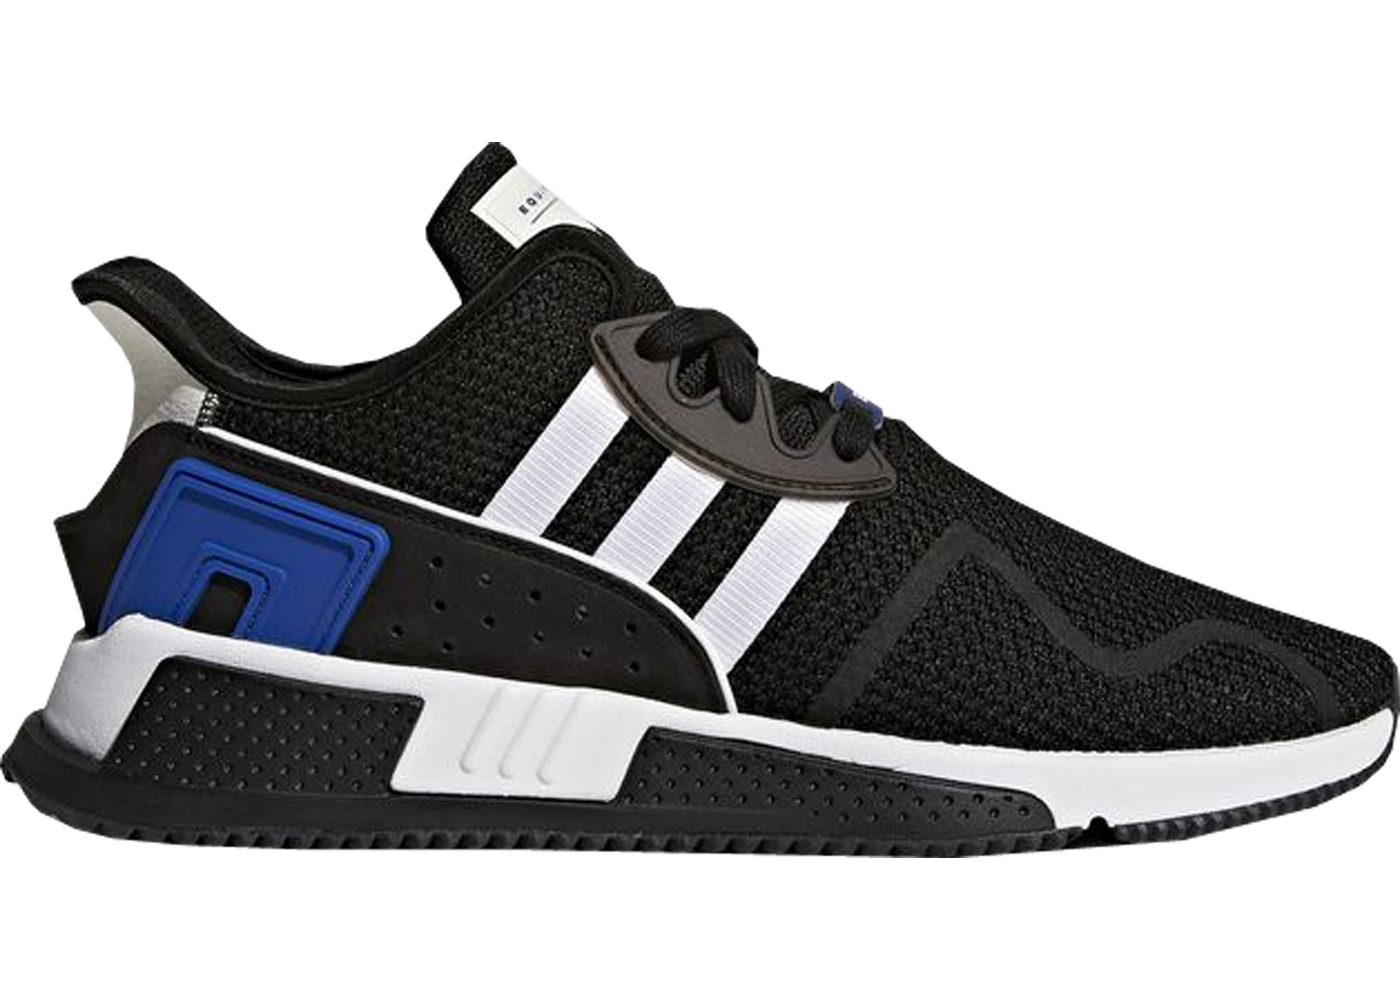 sports shoes 7942d 6cae2 adidas EQT Cushion Adv Black White Royal